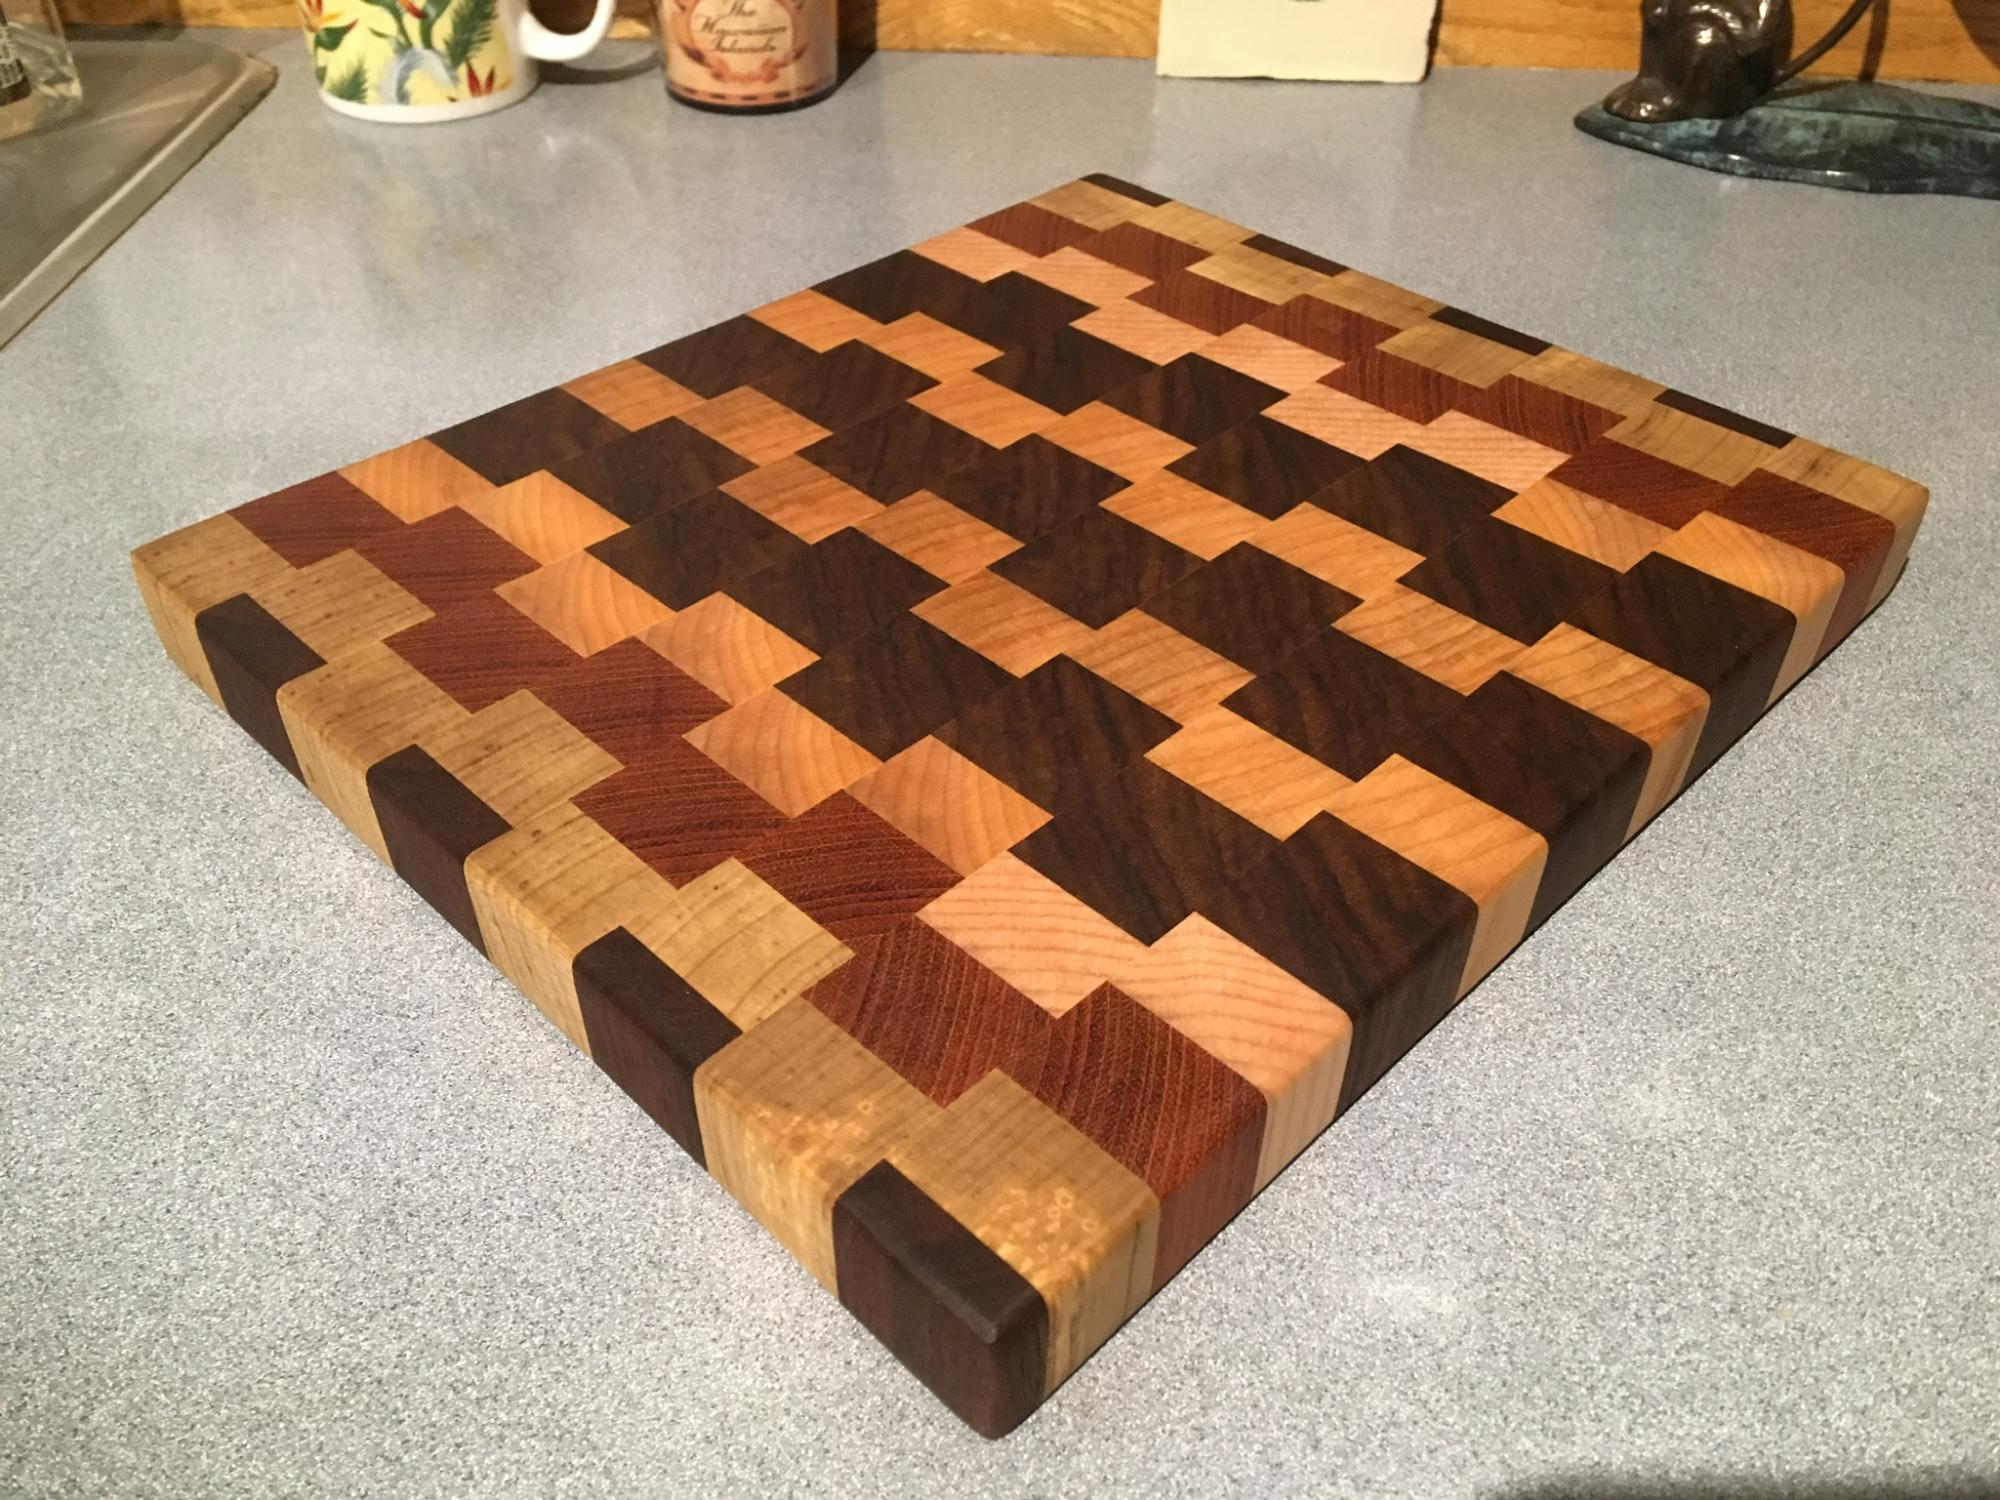 End_Grain_Cutting_Board.jpg